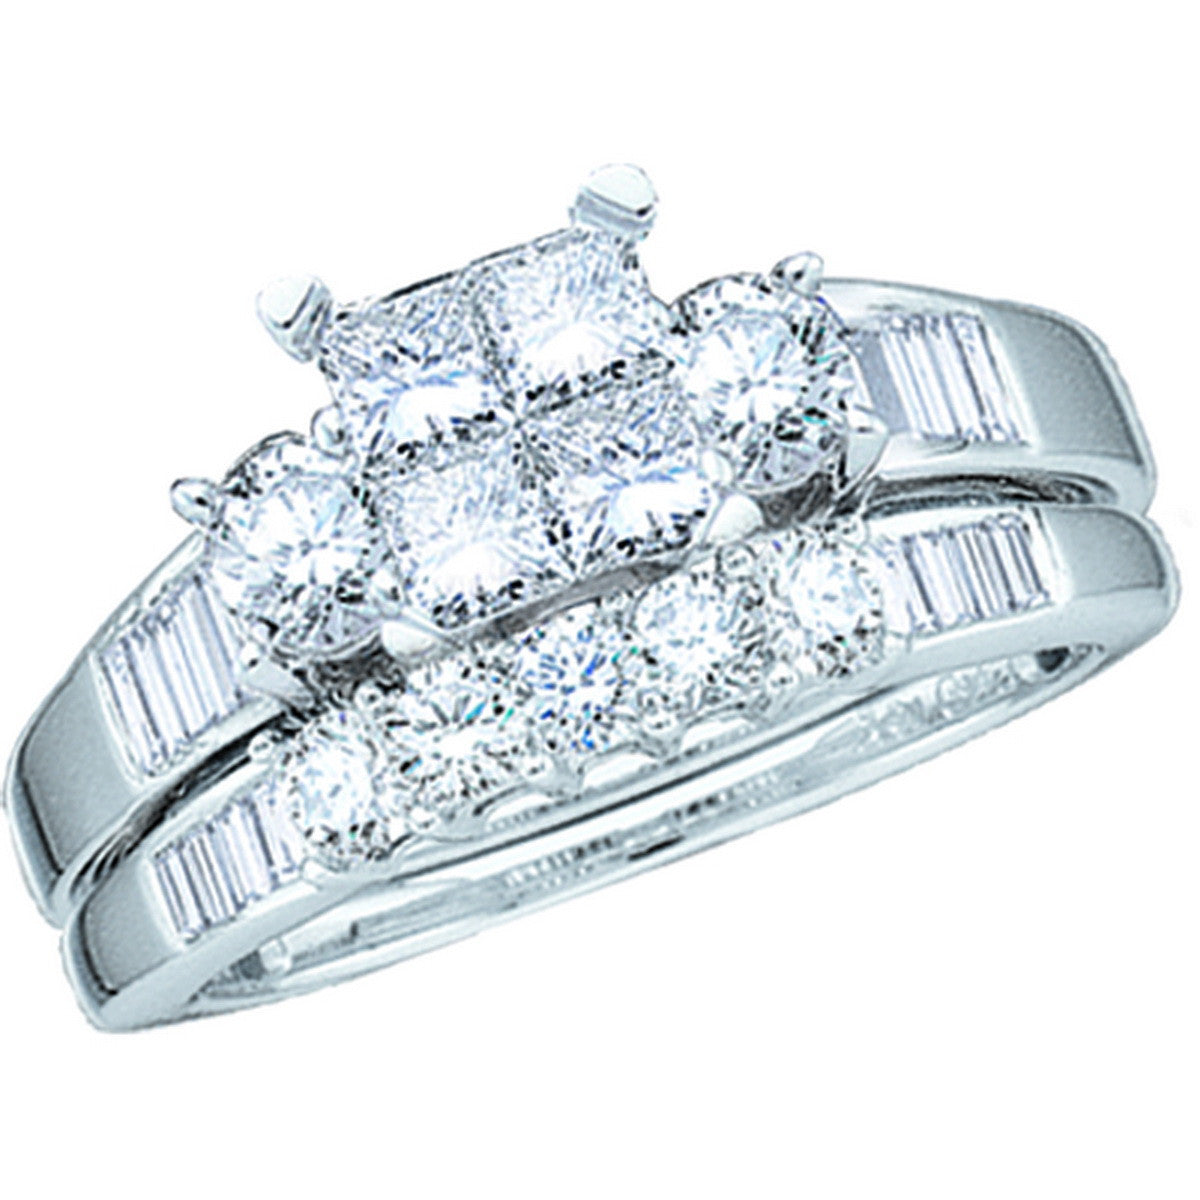 10kt White Gold Womens Princess Diamond Bridal Wedding Engagement Ring Band Set 1.00 Cttw Size 6 60149 - shirin-diamonds